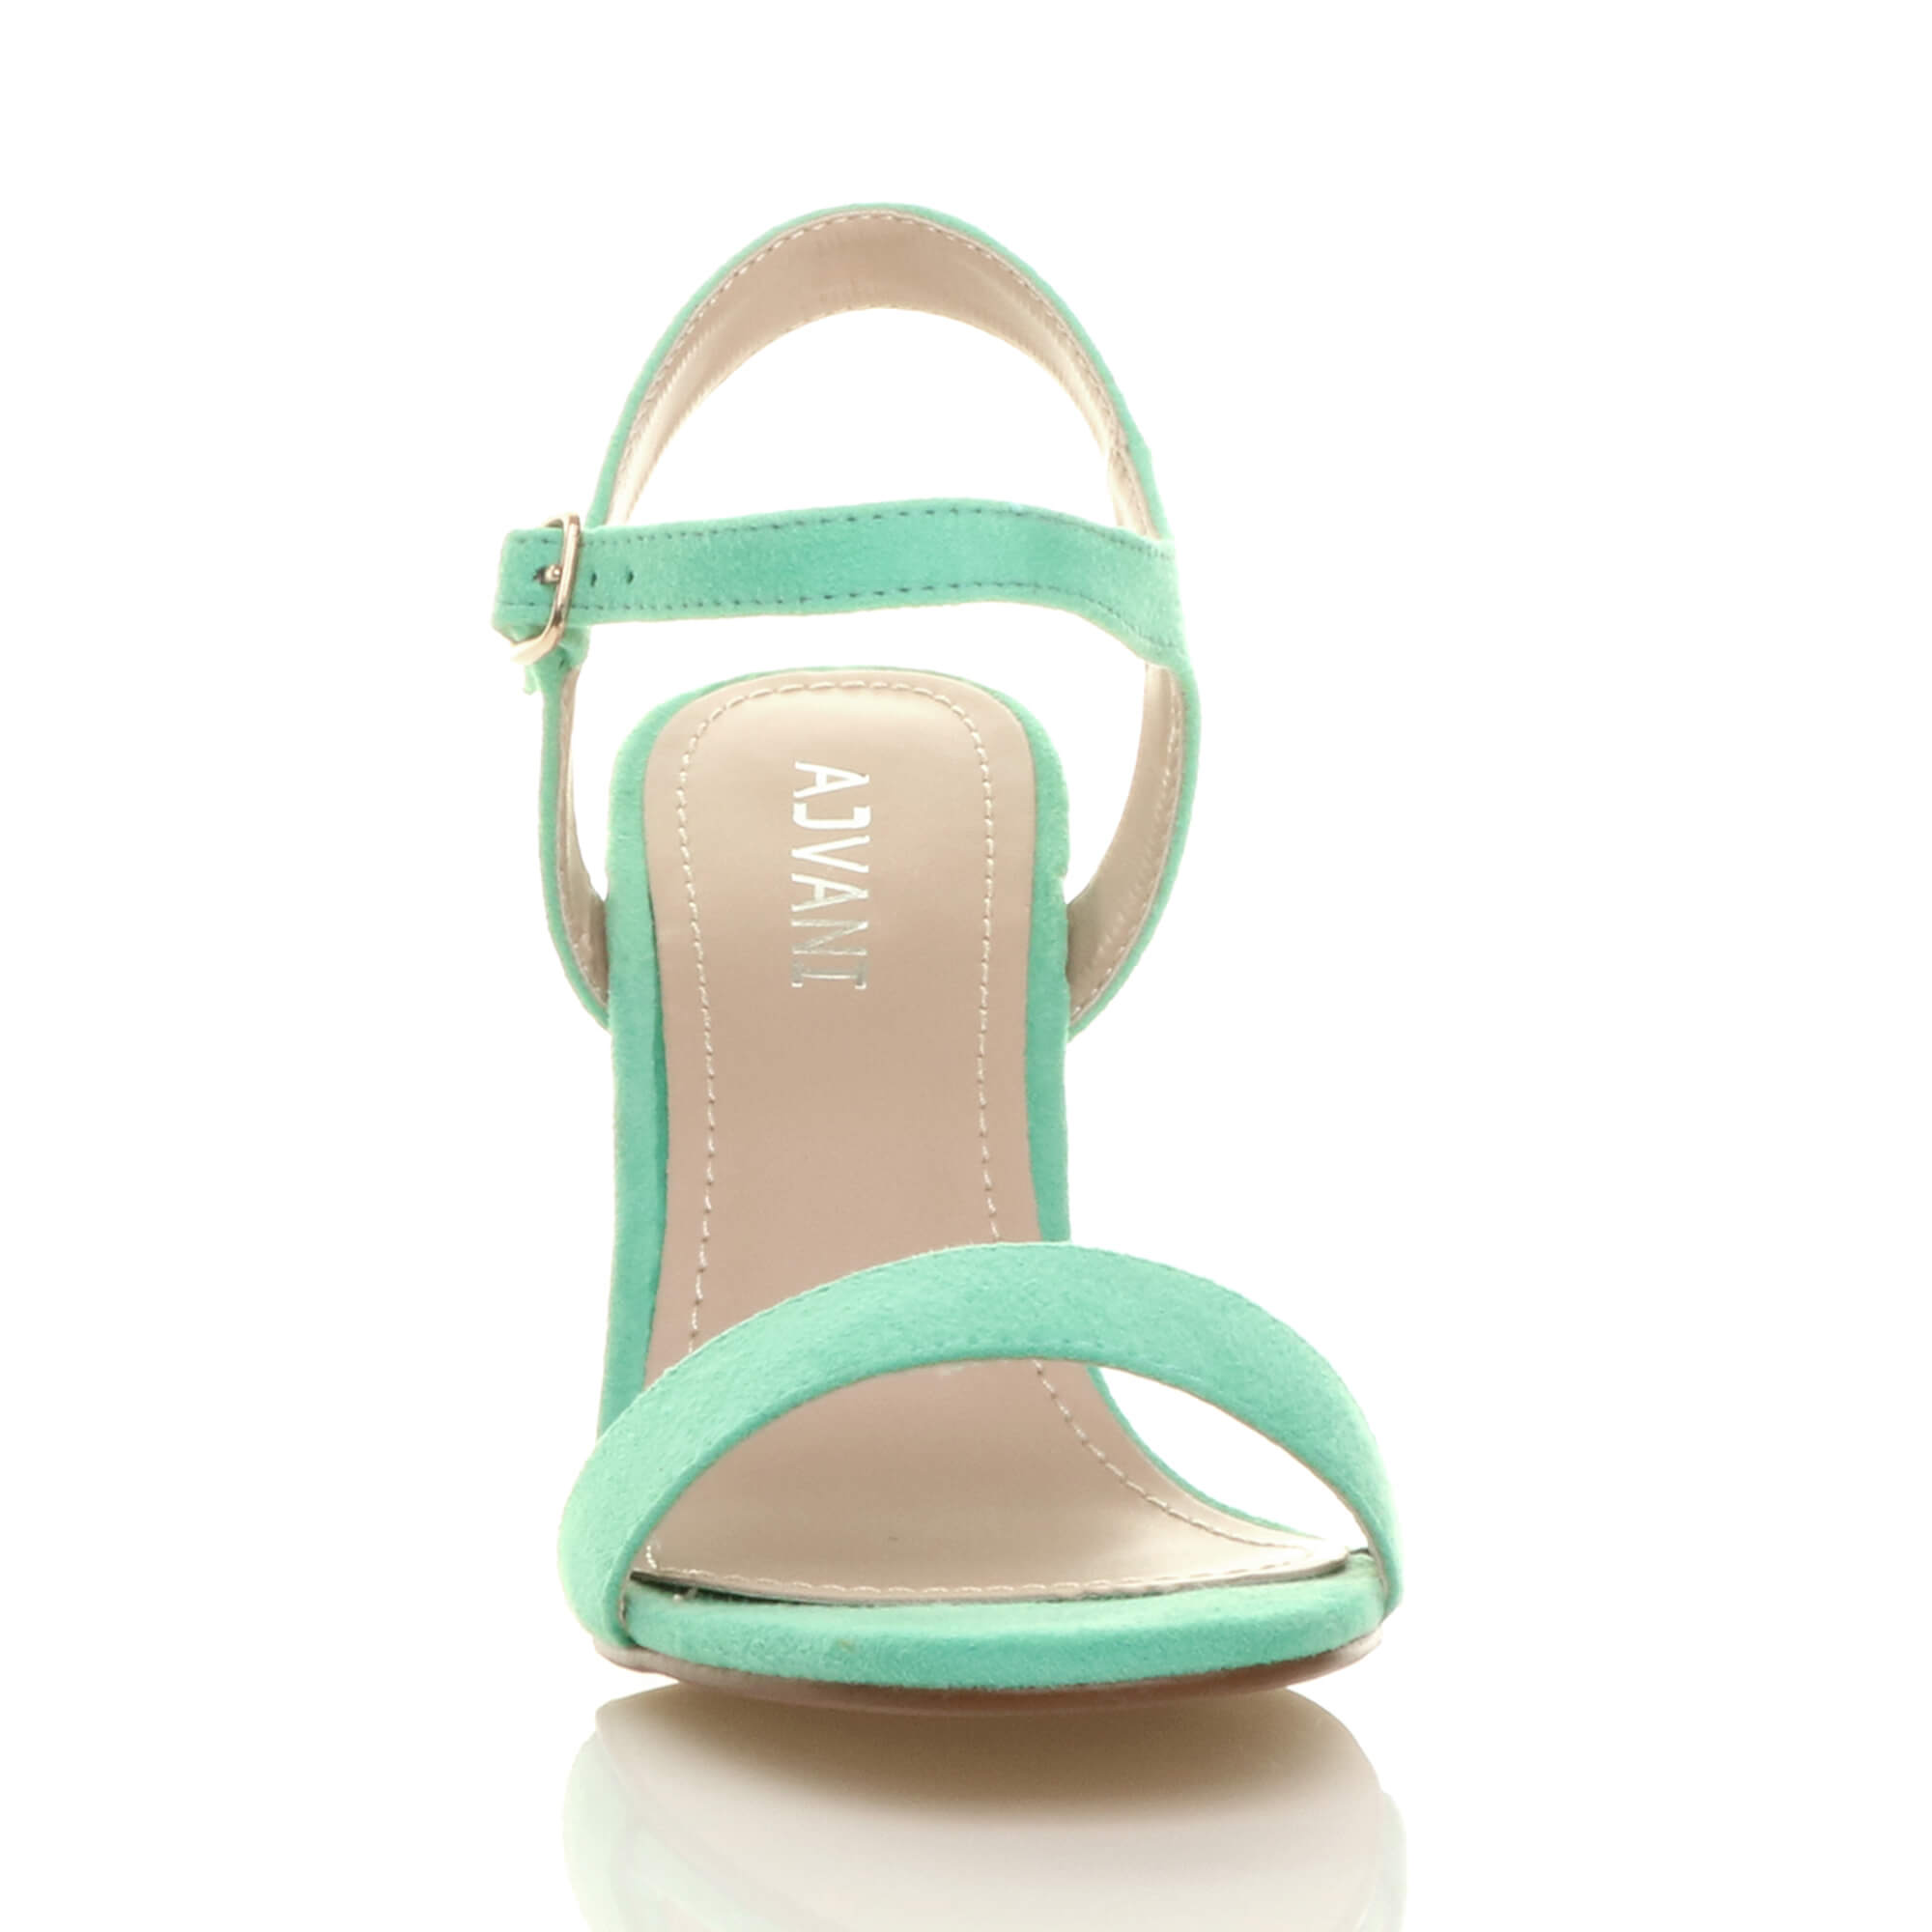 WOMENS-LADIES-HIGH-HEEL-BUCKLE-STRAPPY-BASIC-BARELY-THERE-SANDALS-SHOES-SIZE thumbnail 62